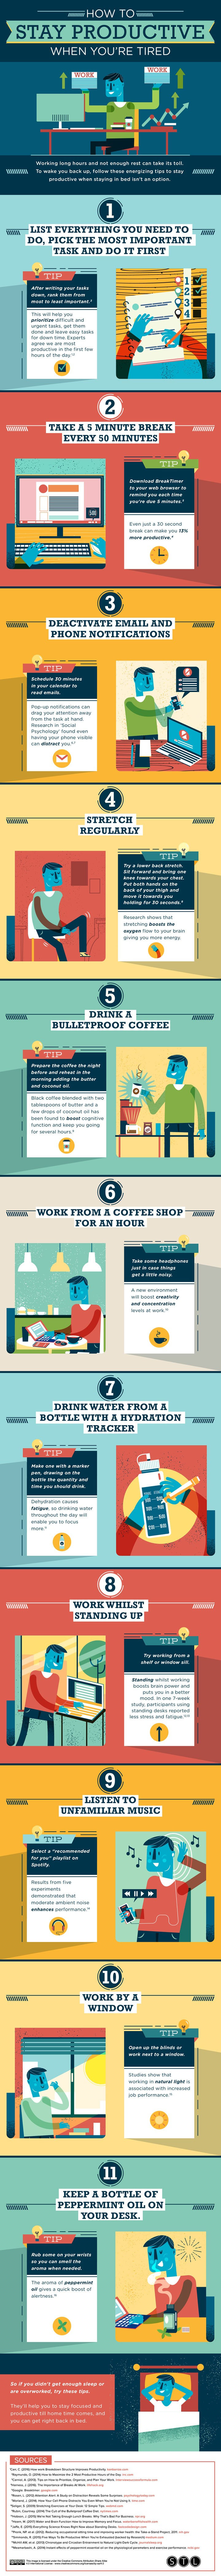 how to be productive all day infographic